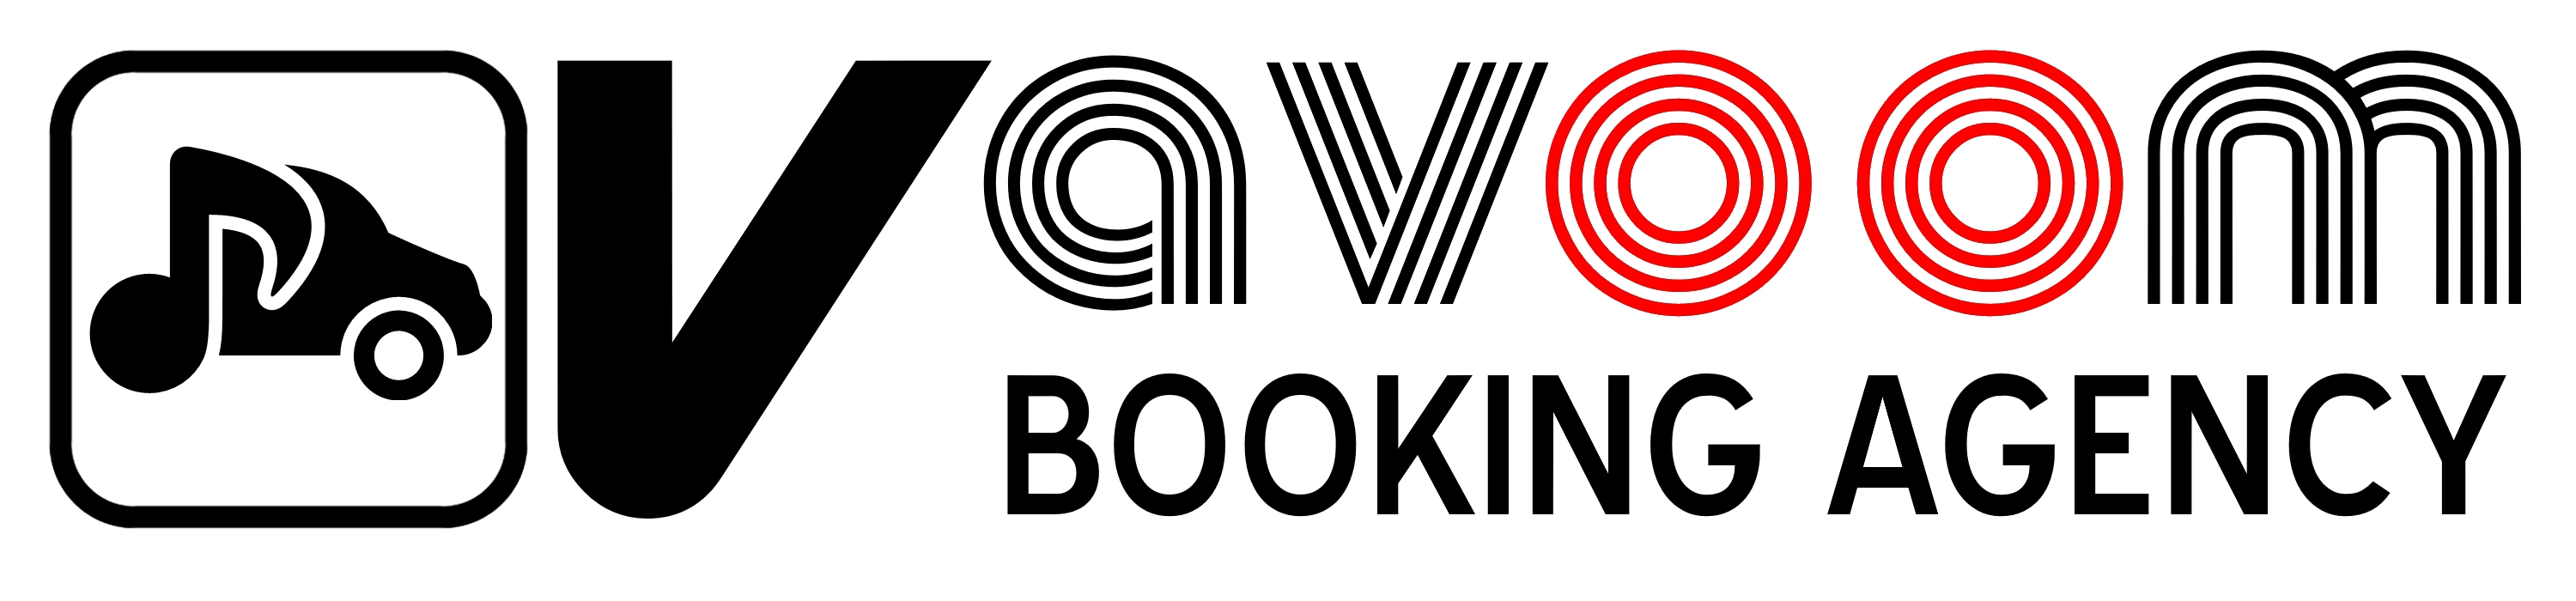 Vavoom Booking Agency Logo